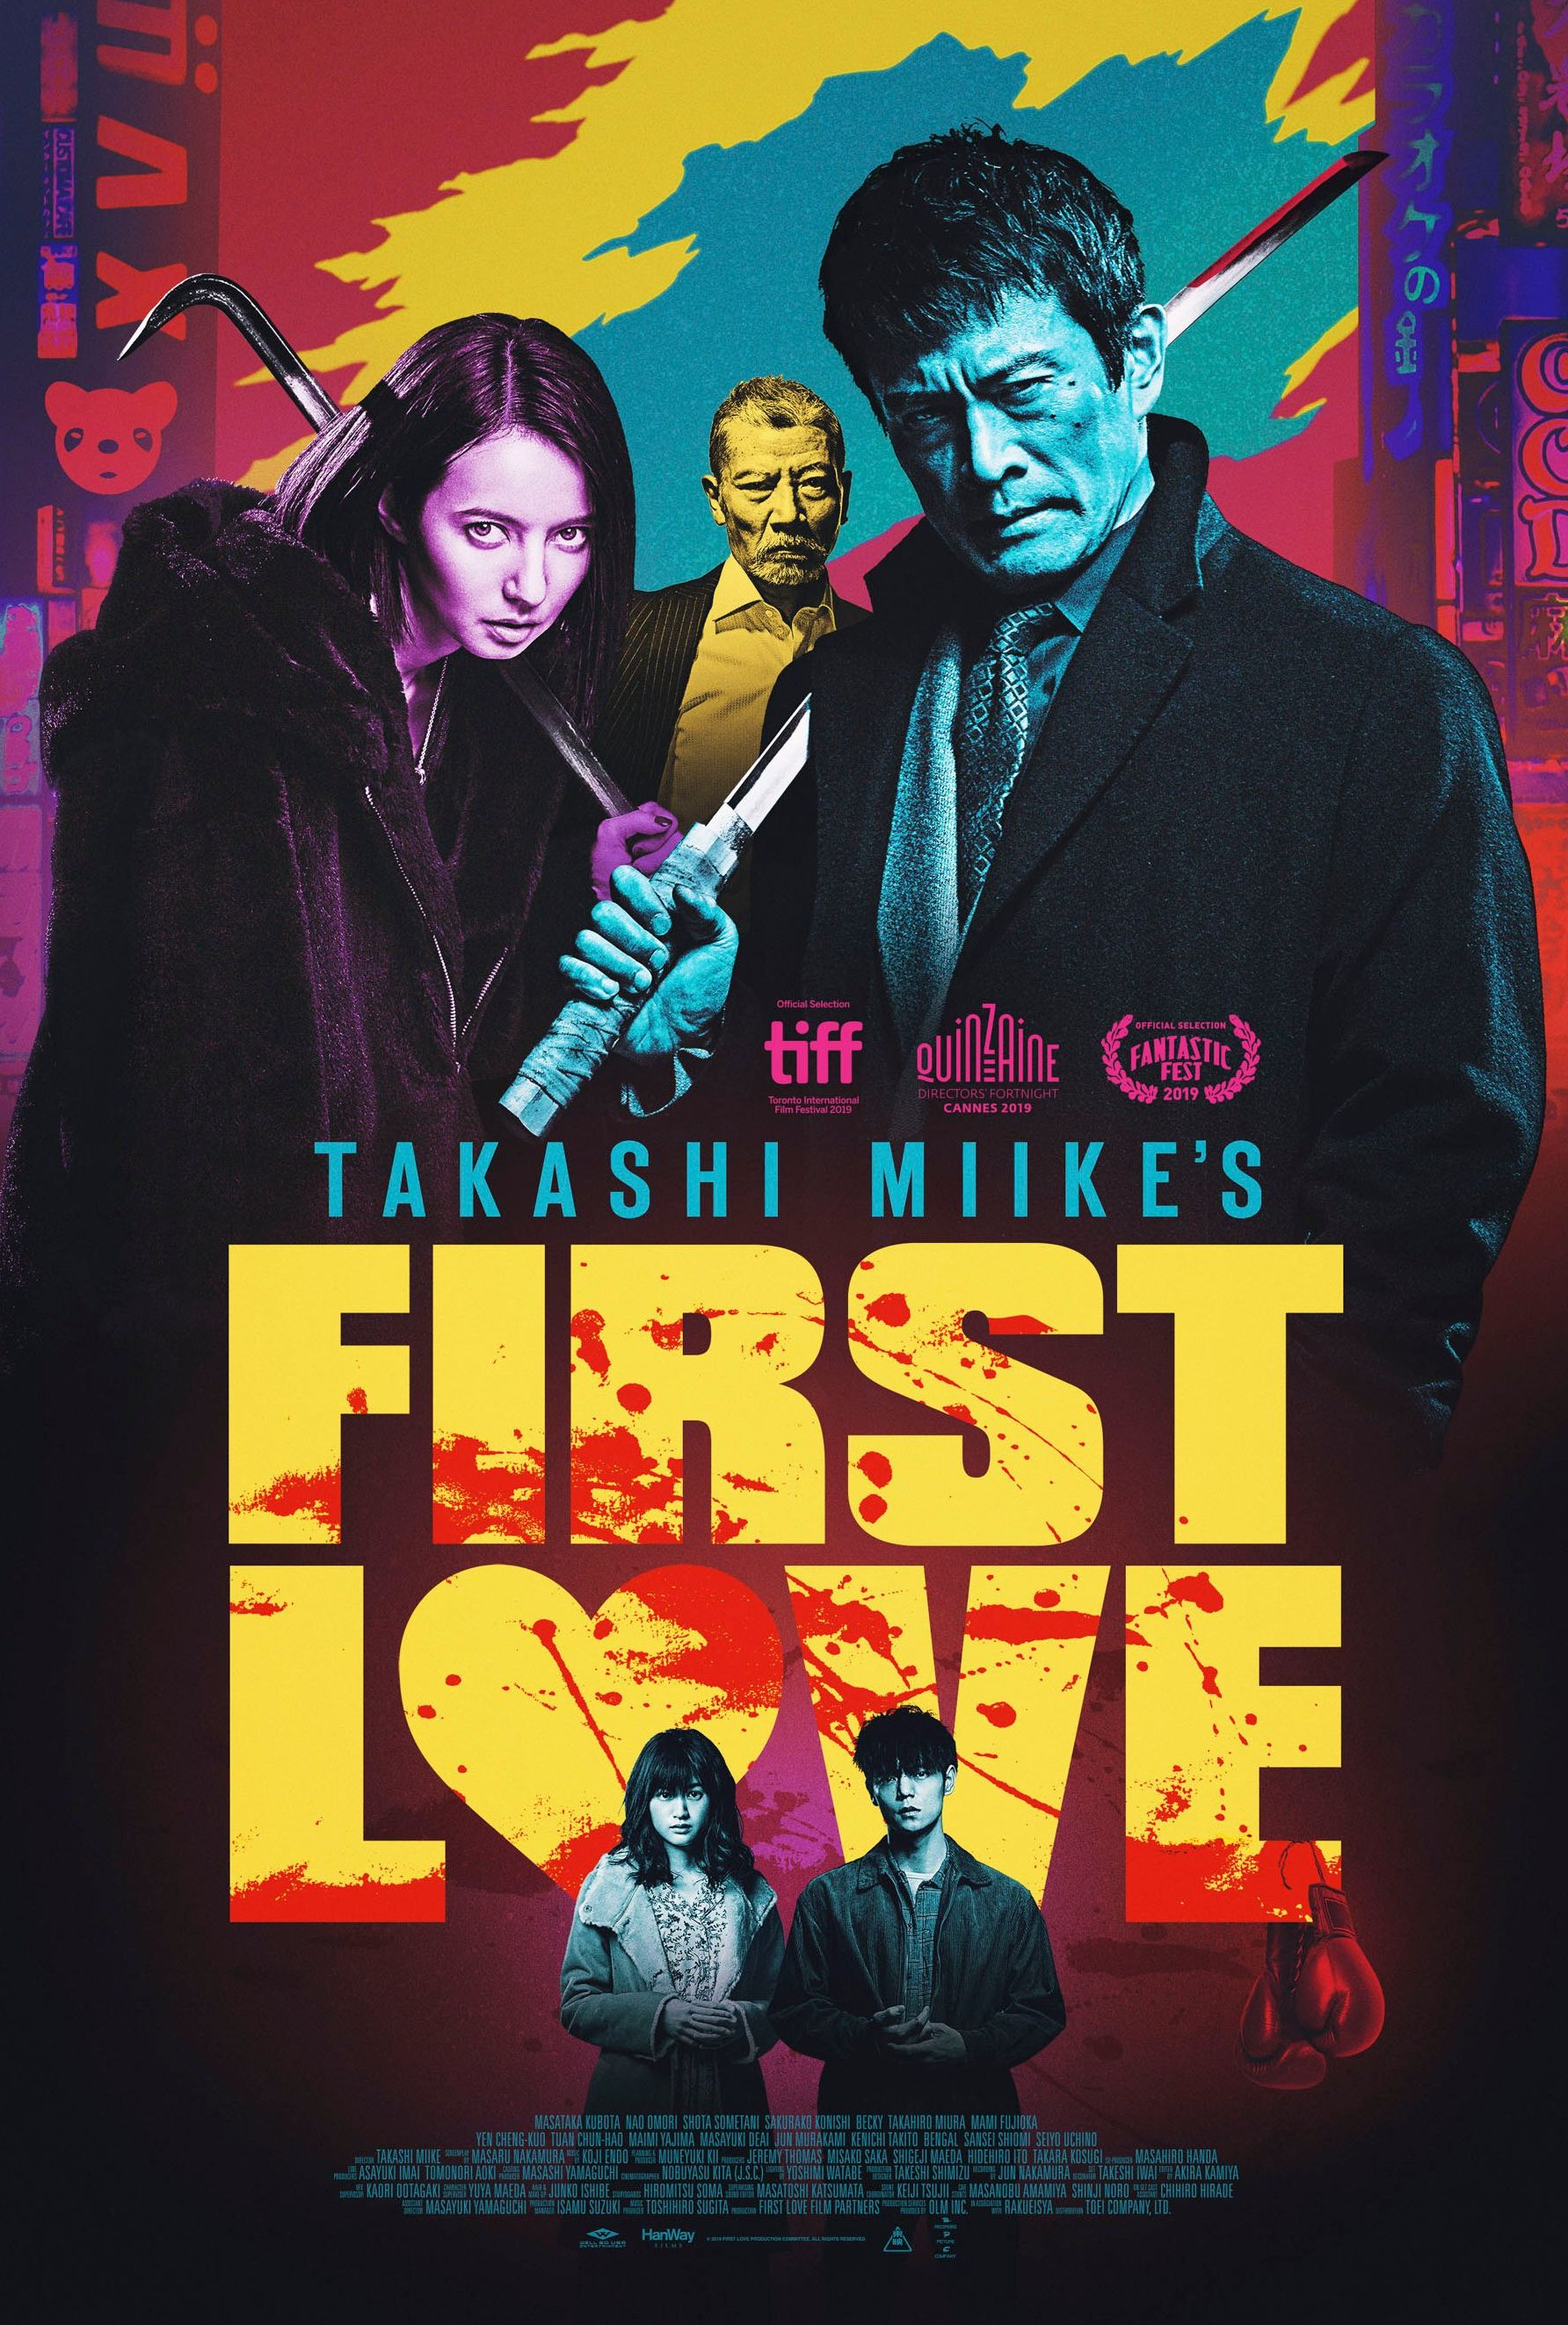 Takashi Miike's 'First Love' poster